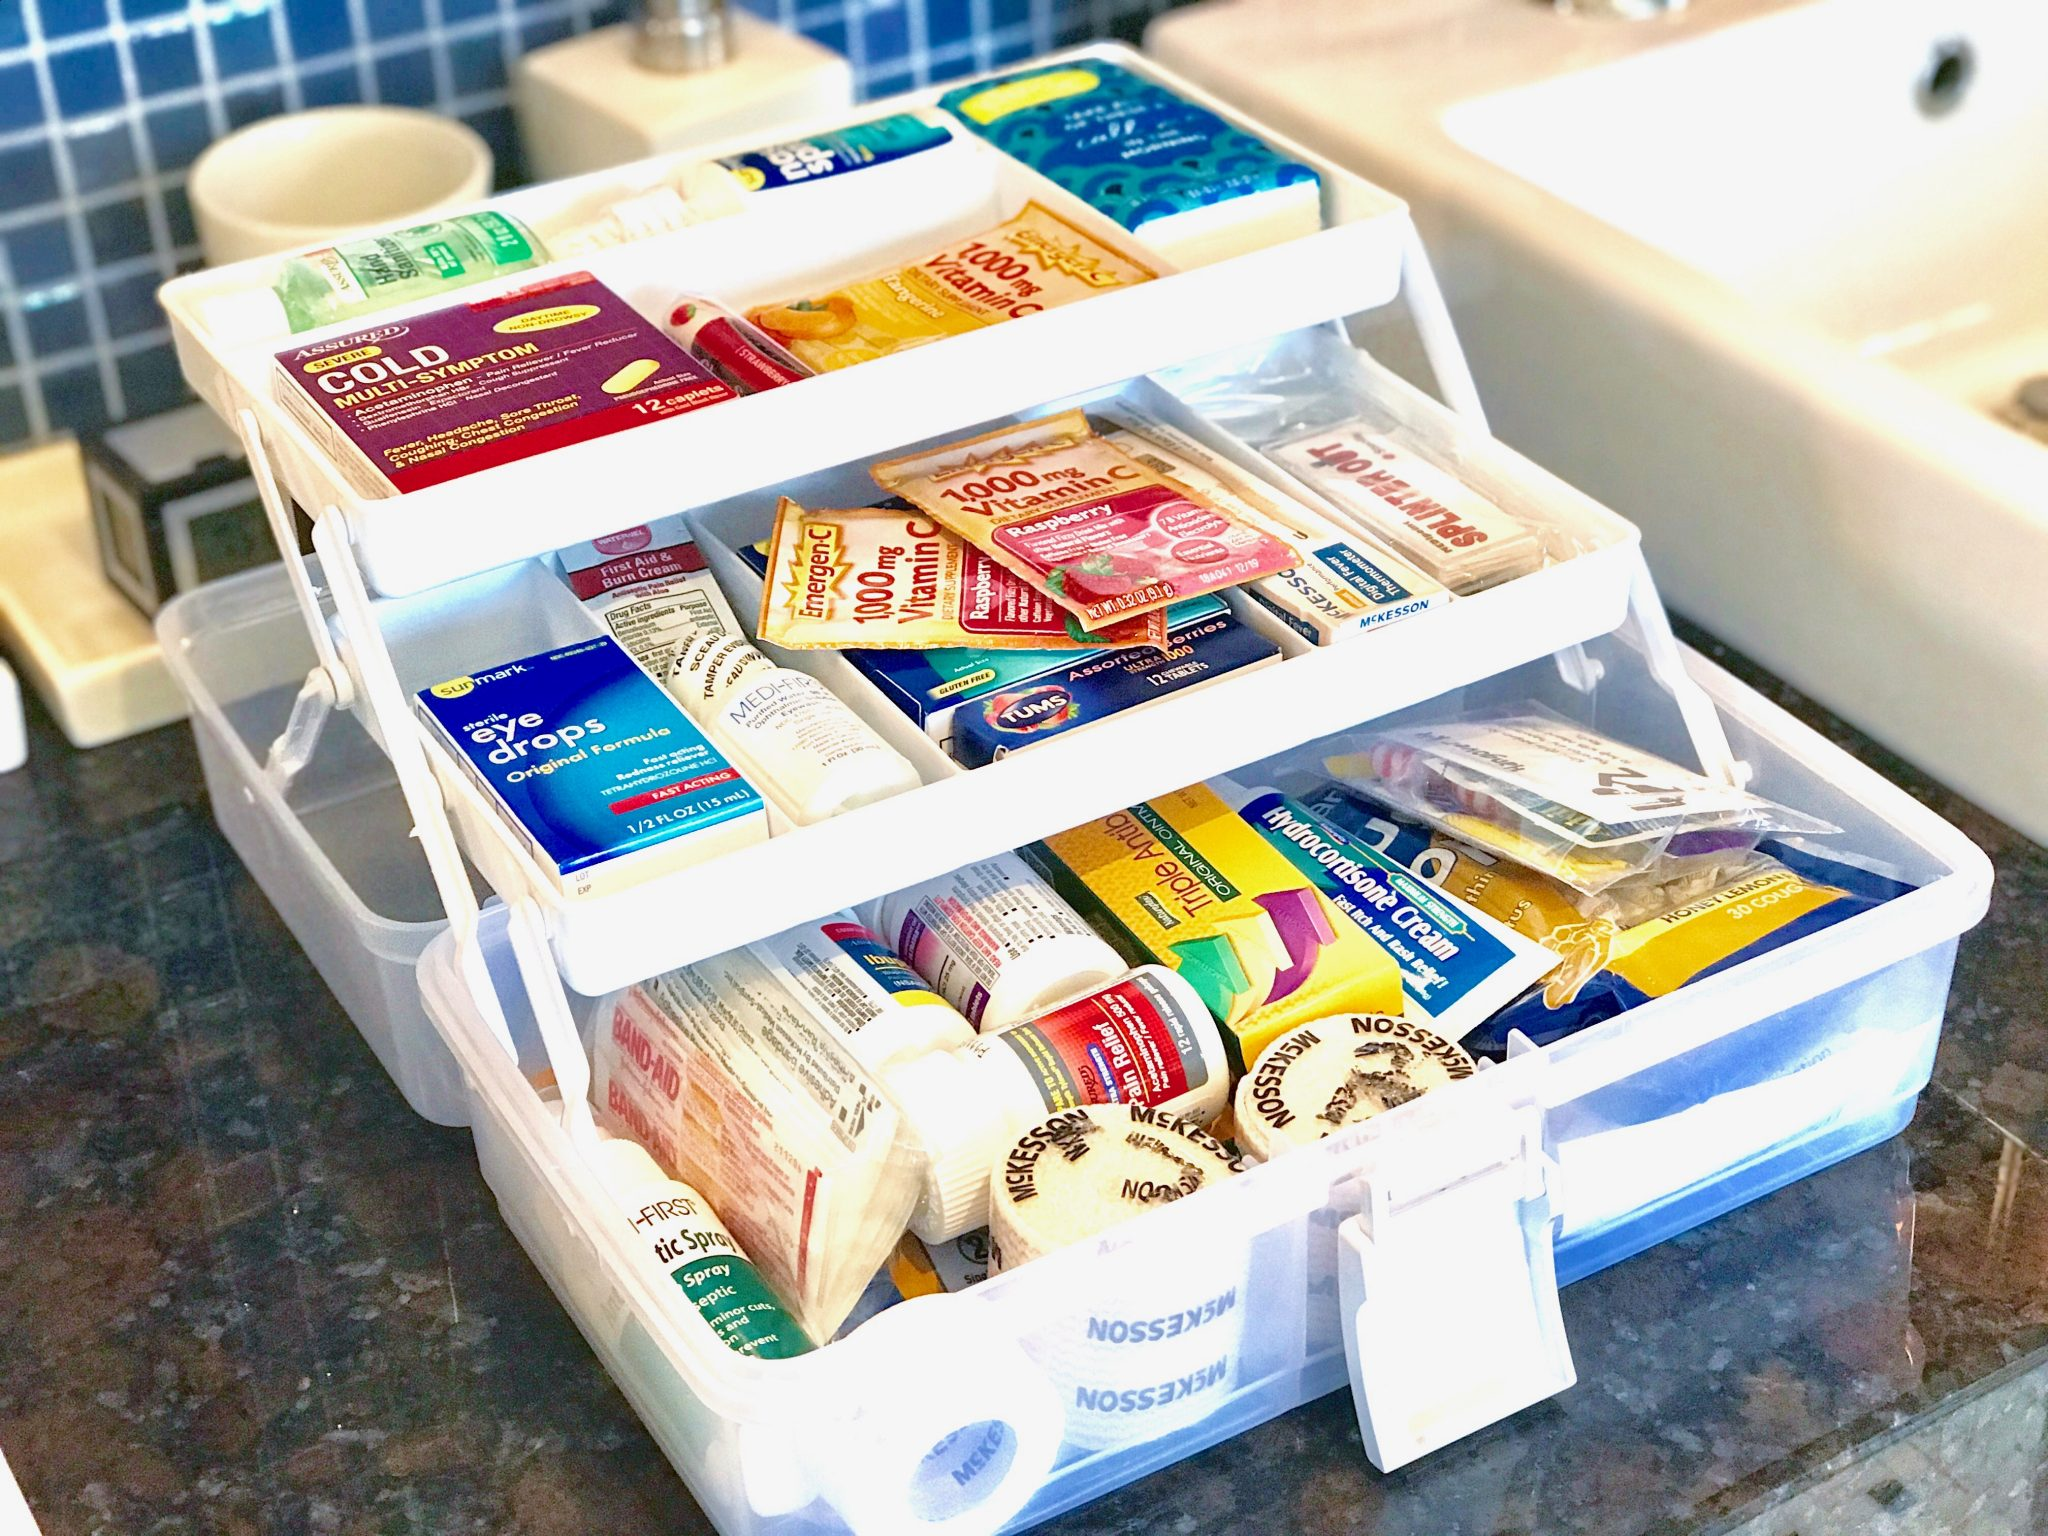 First aid kit stocked full